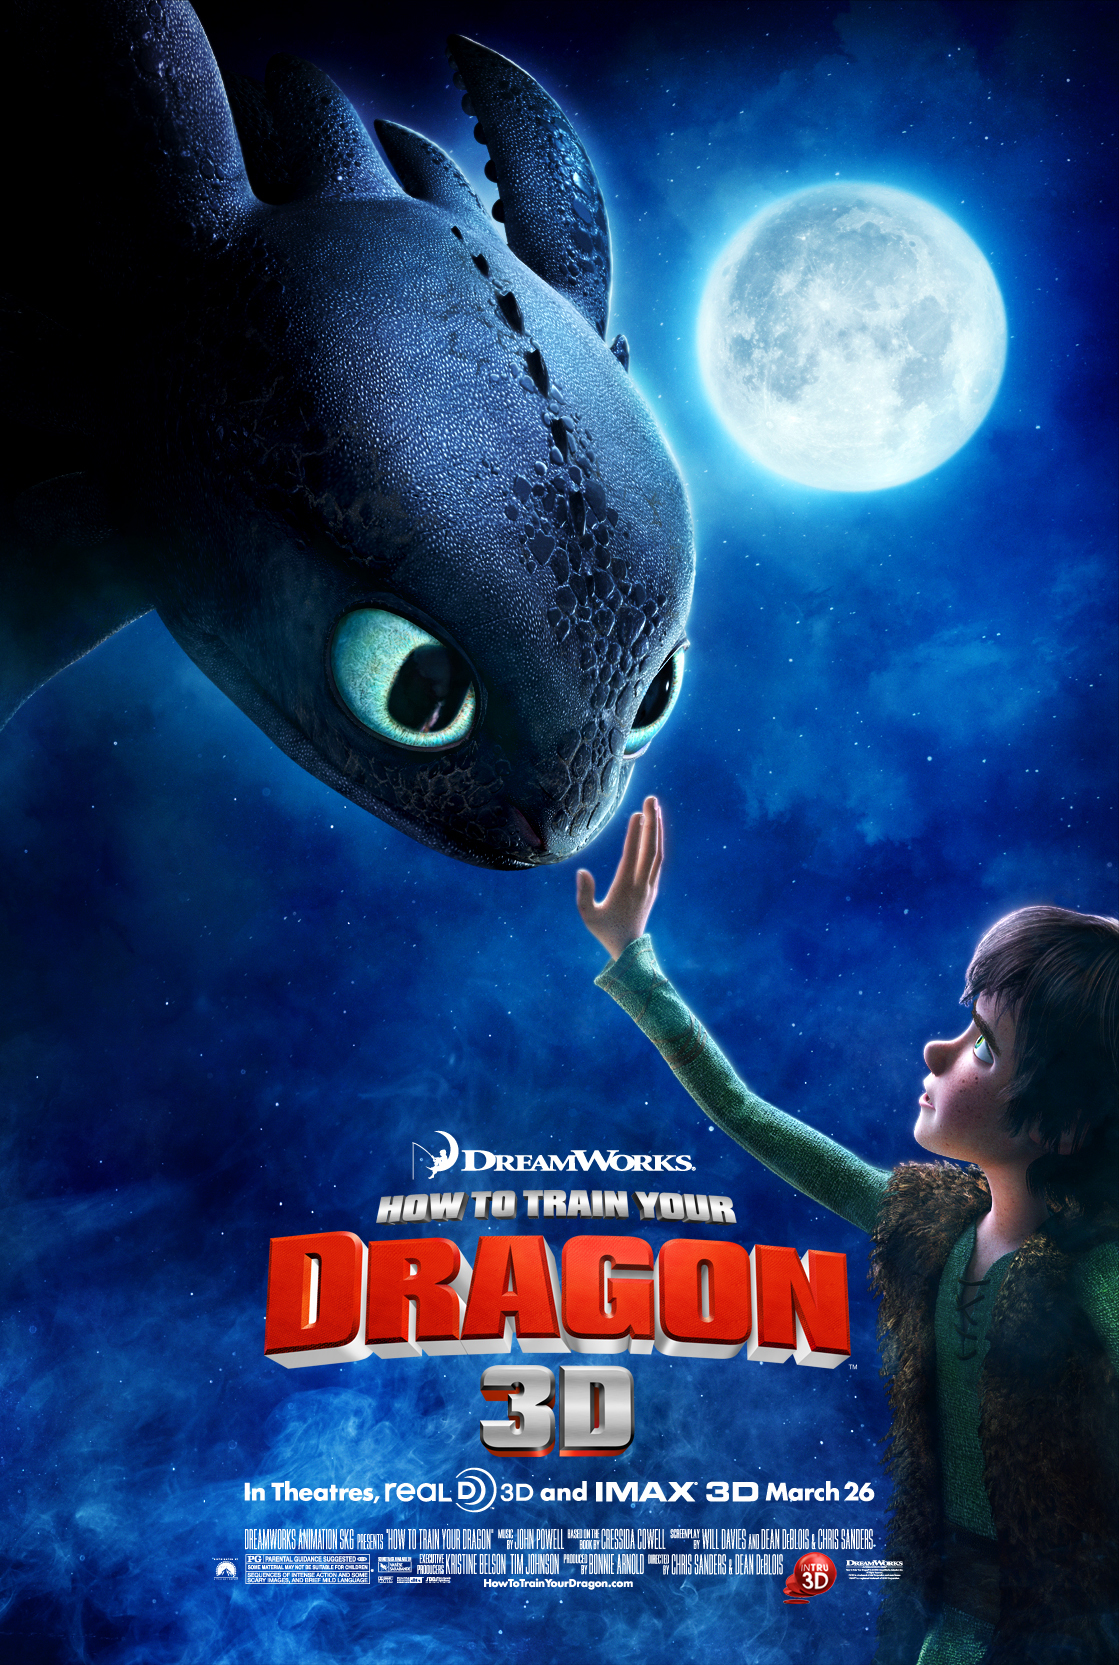 How to Train Your Dragon (2010) Animation Movie